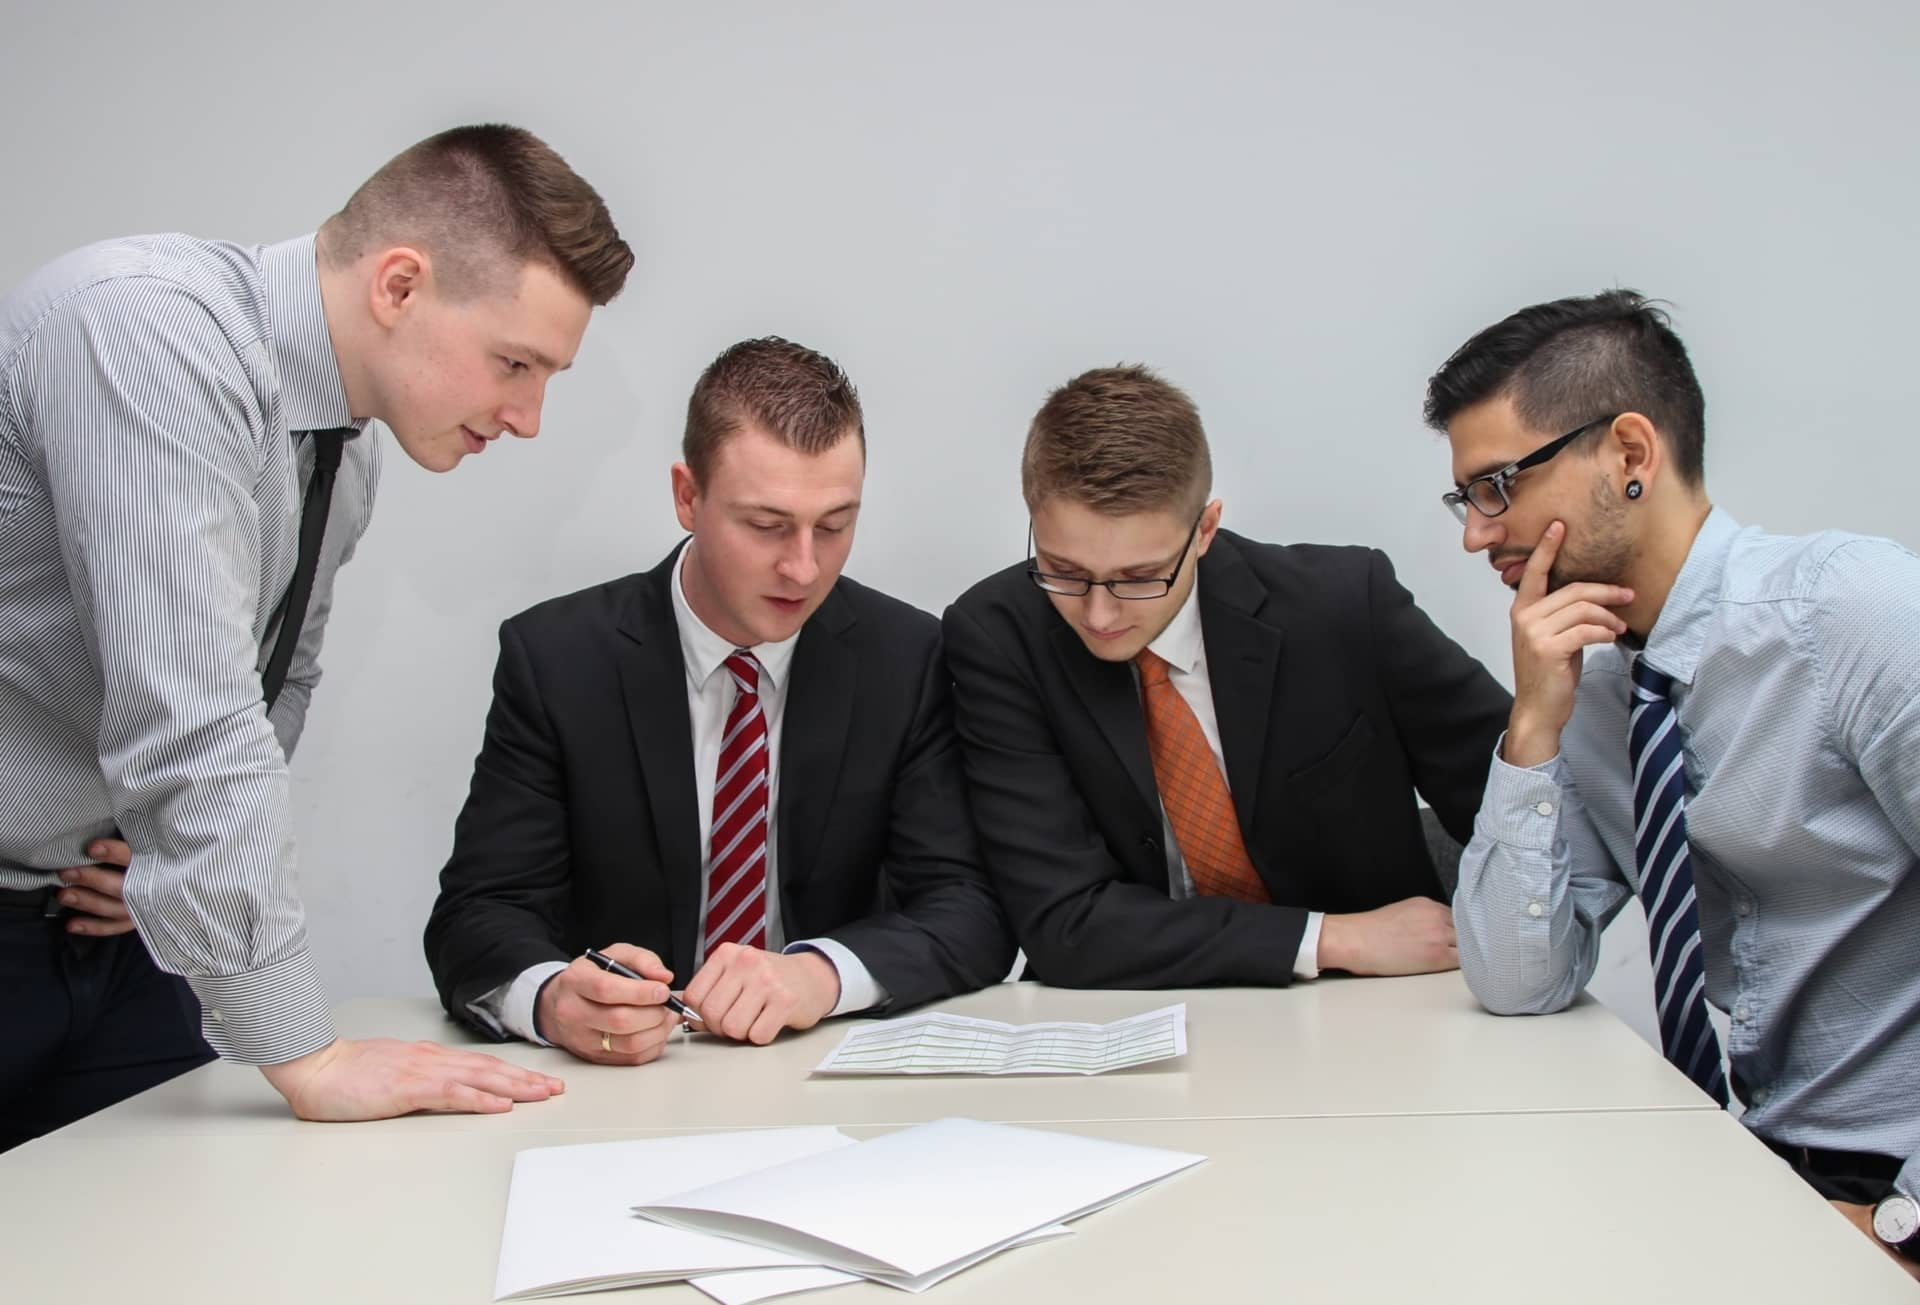 Group of employees in a staff meeting